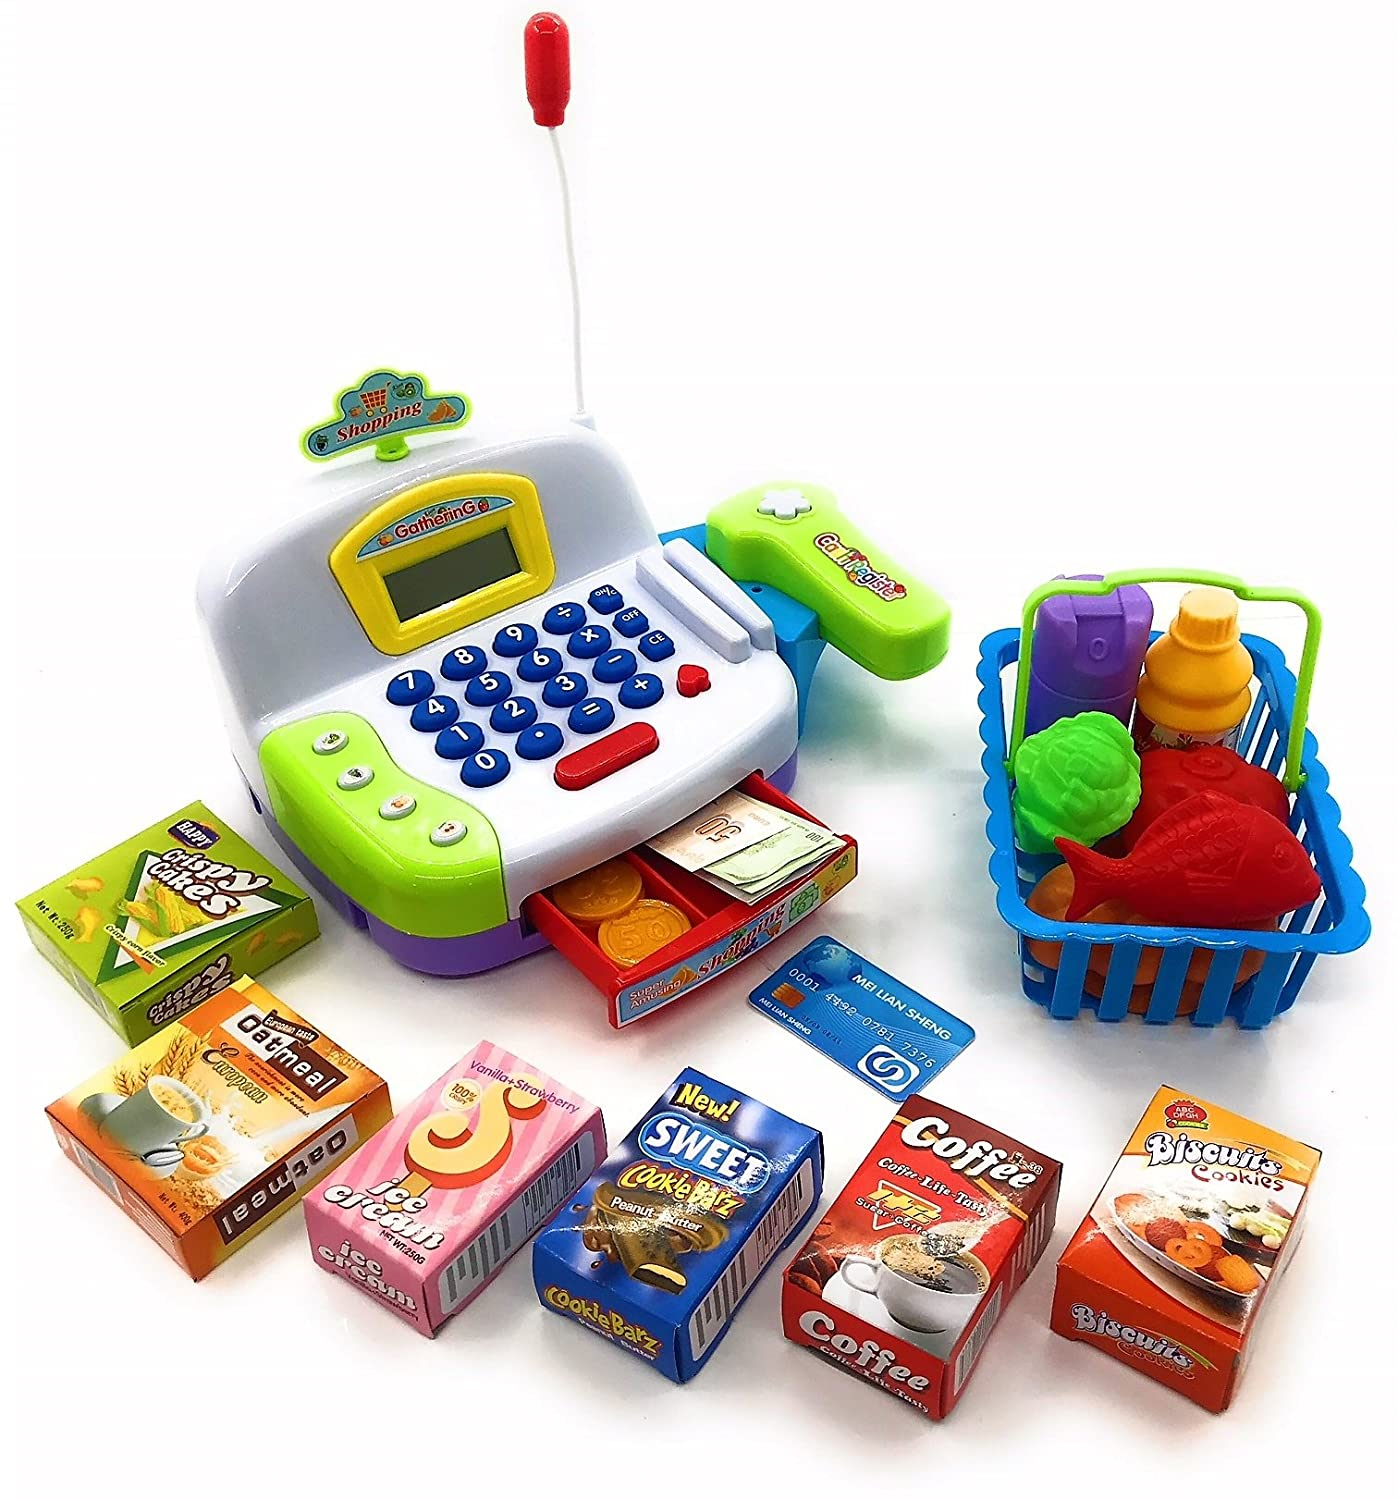 Toy Cash Register Cashier Playset Battery Operated, Kids Pretend Play Set,Colorful Childrens Cash Register w/Microphone, Scanner, Calculator, ...